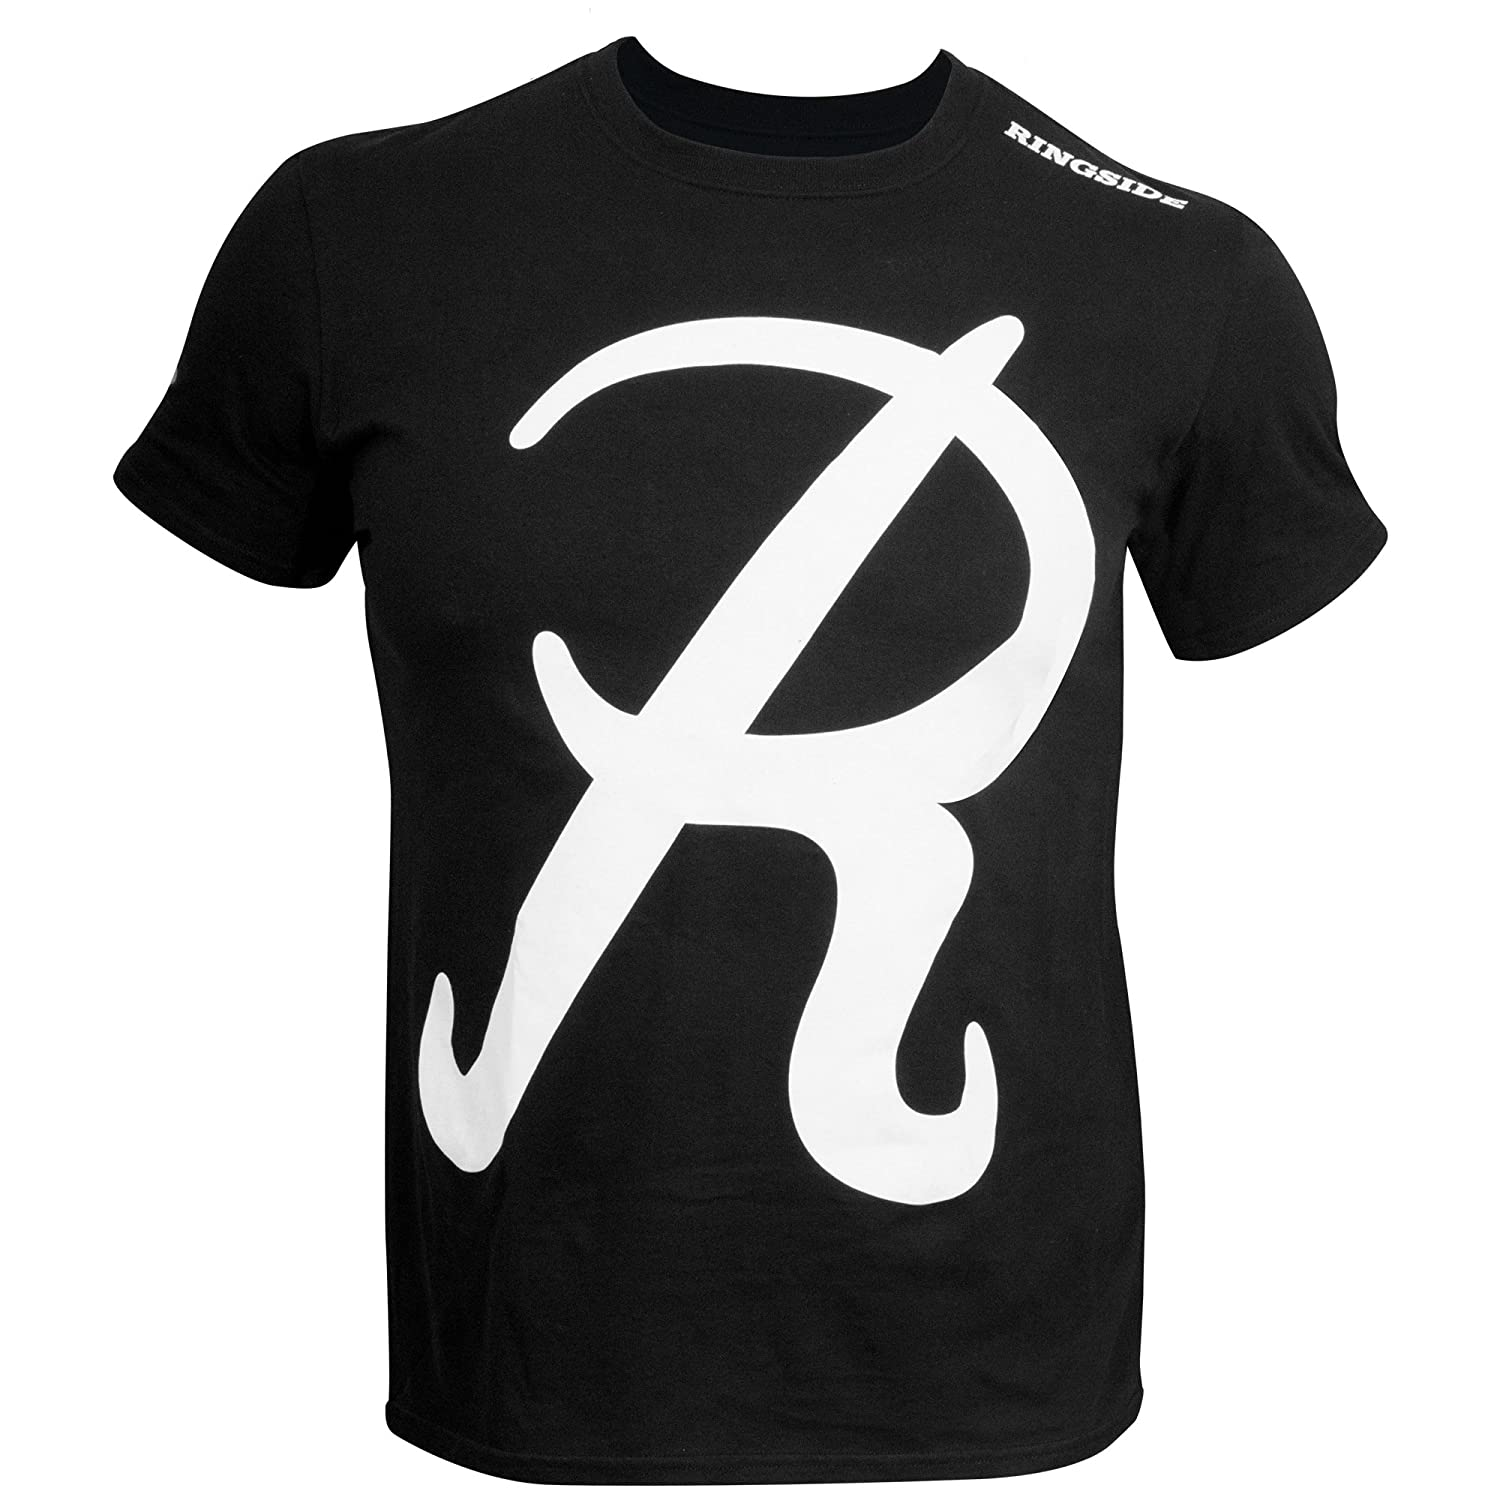 Ringside Big R T-Shirt FFTS11 -P